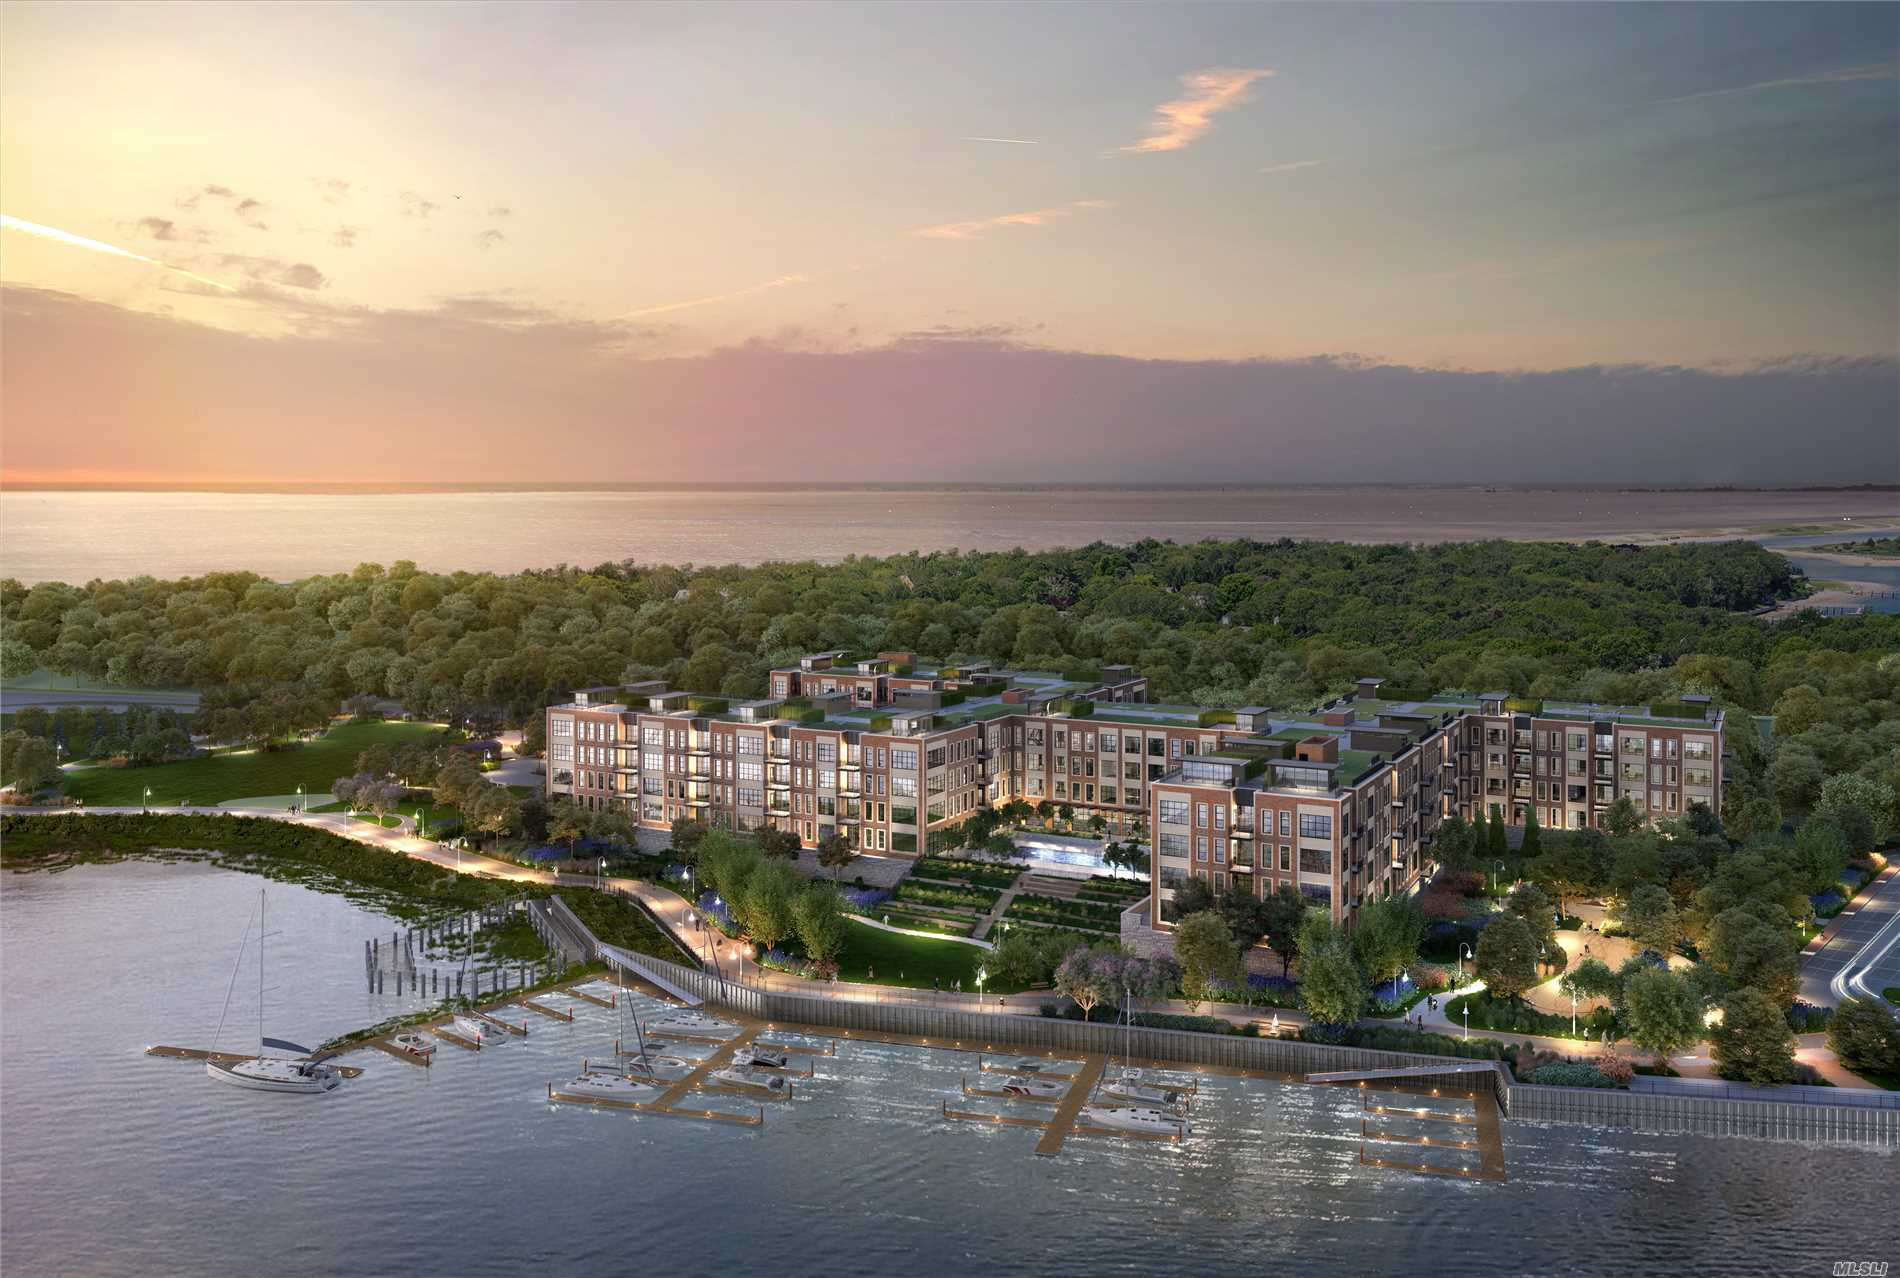 Property for sale at 100 Garvies Point Road # 1037, Glen Cove NY 11542, Glen Cove,  New York 11542